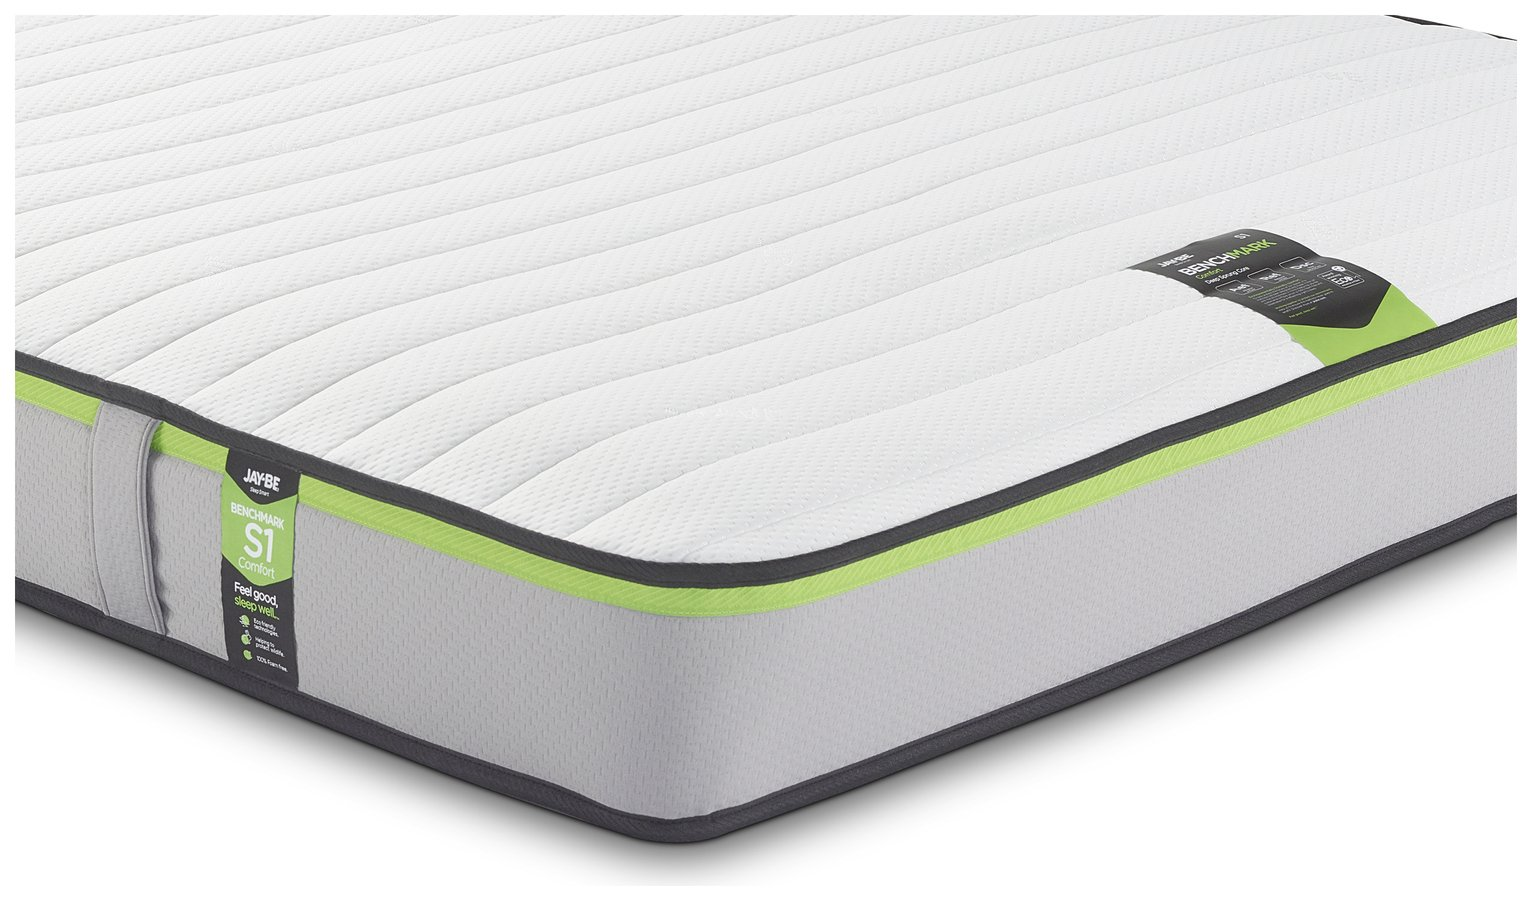 Jay-Be Benchmark S1 Comfort Eco Friendly Sml Double Mattress